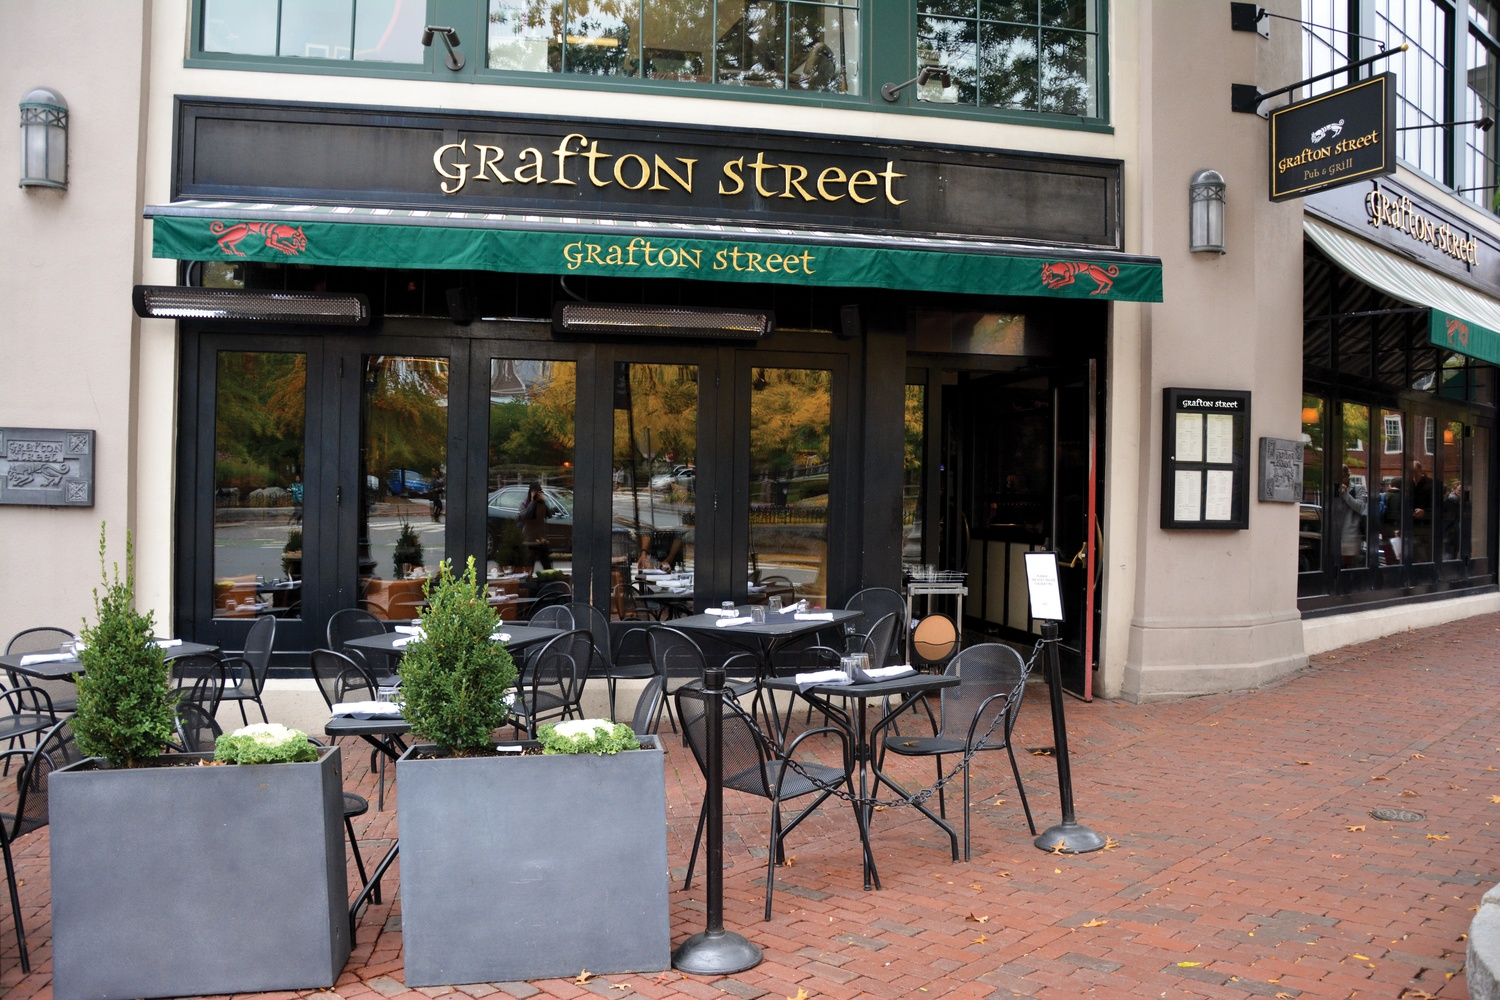 Classroom to Table, now out of money, took students to restaurants such as Grafton Street.